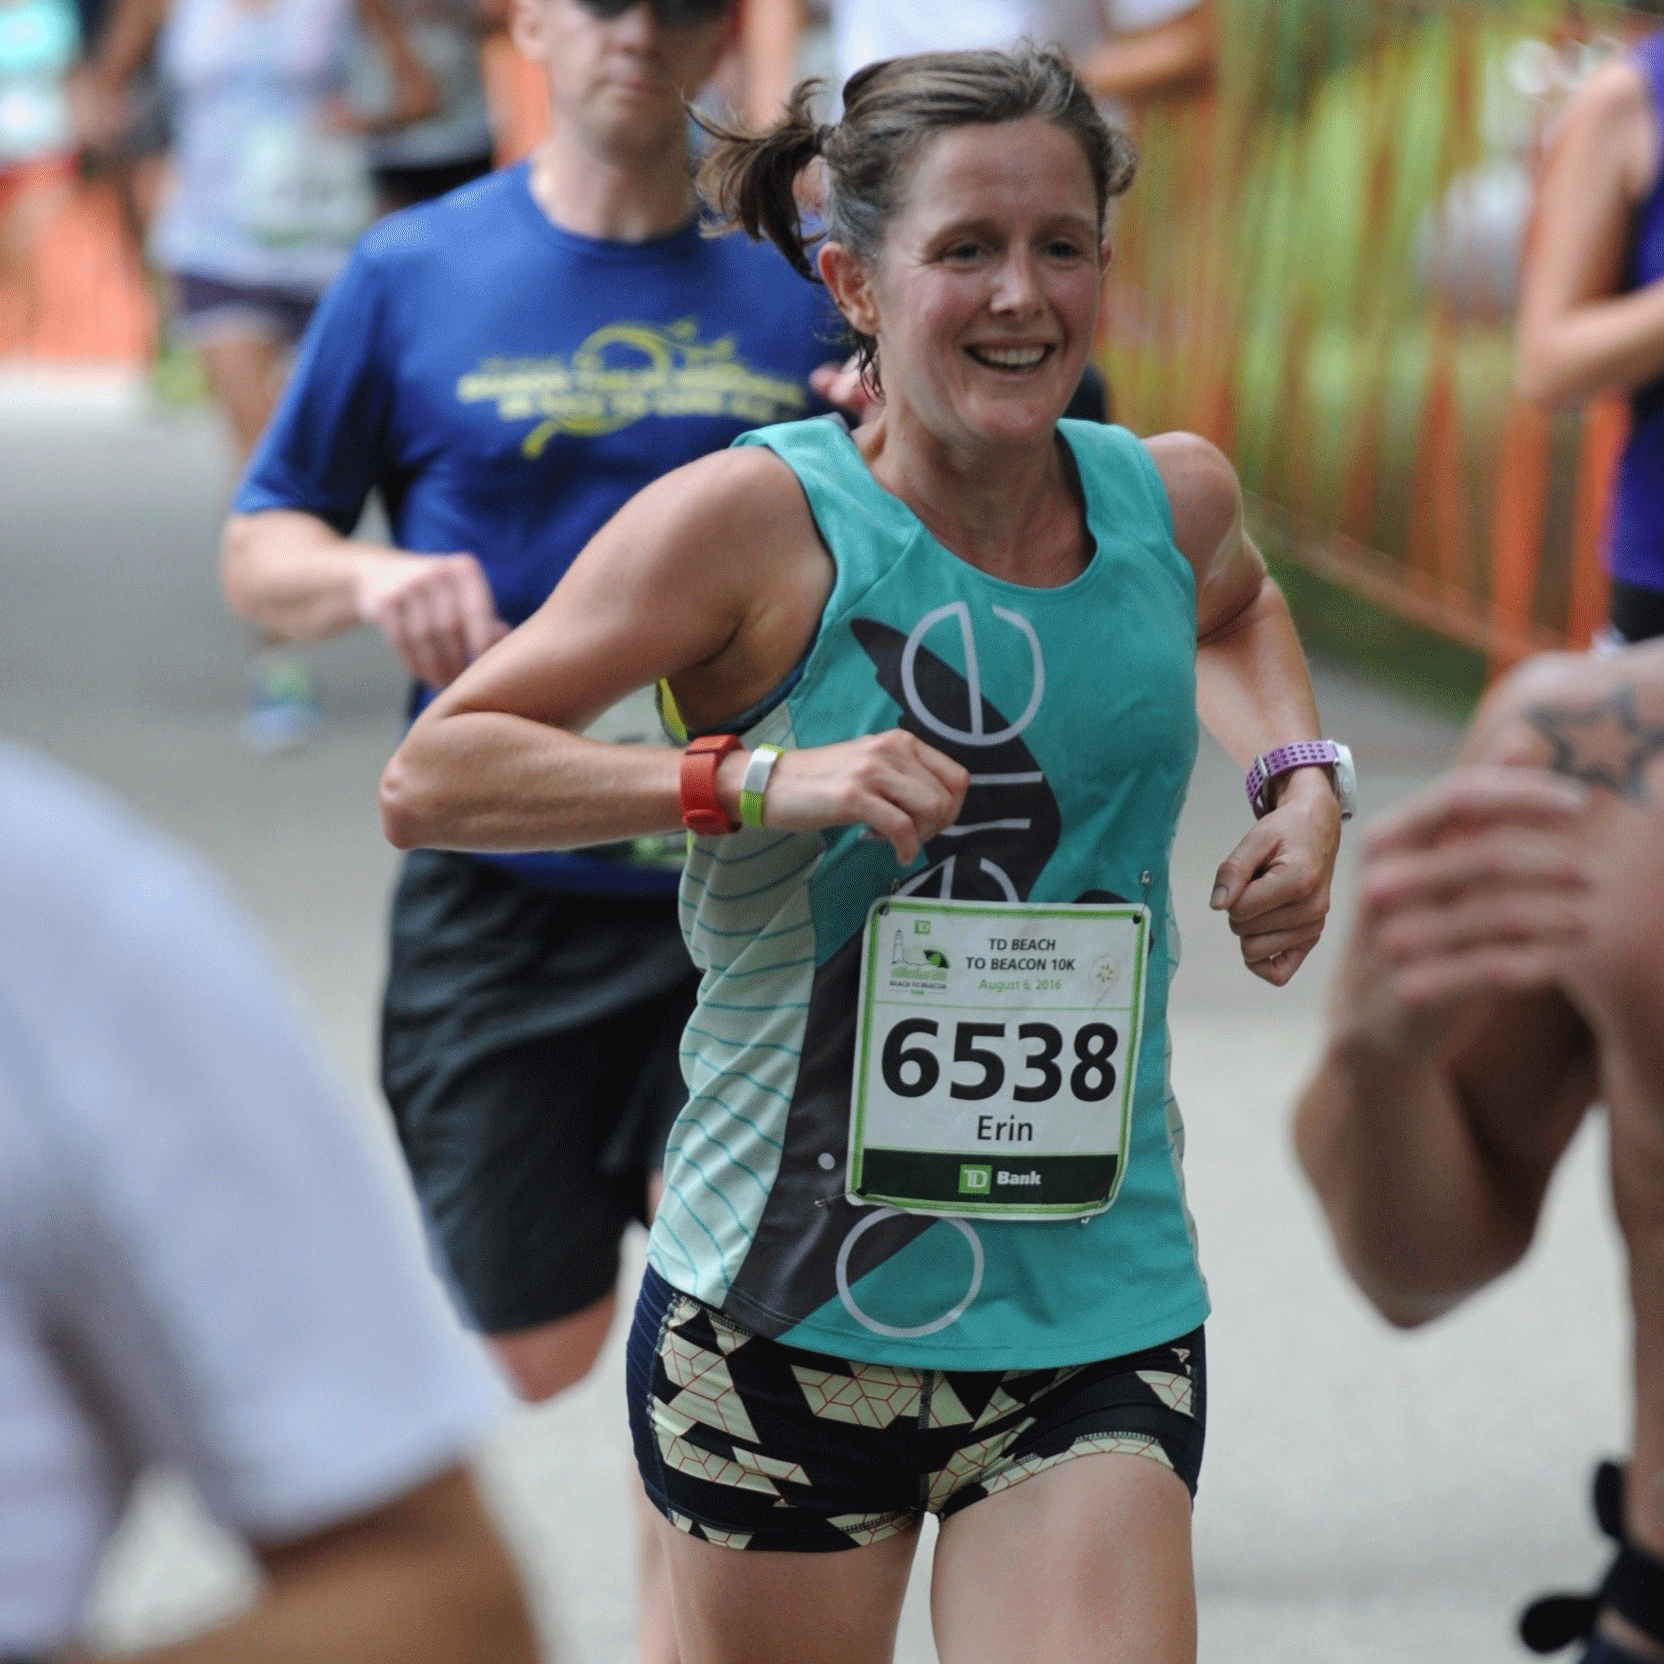 Big congrats to Erin and all the Boston Finishers!